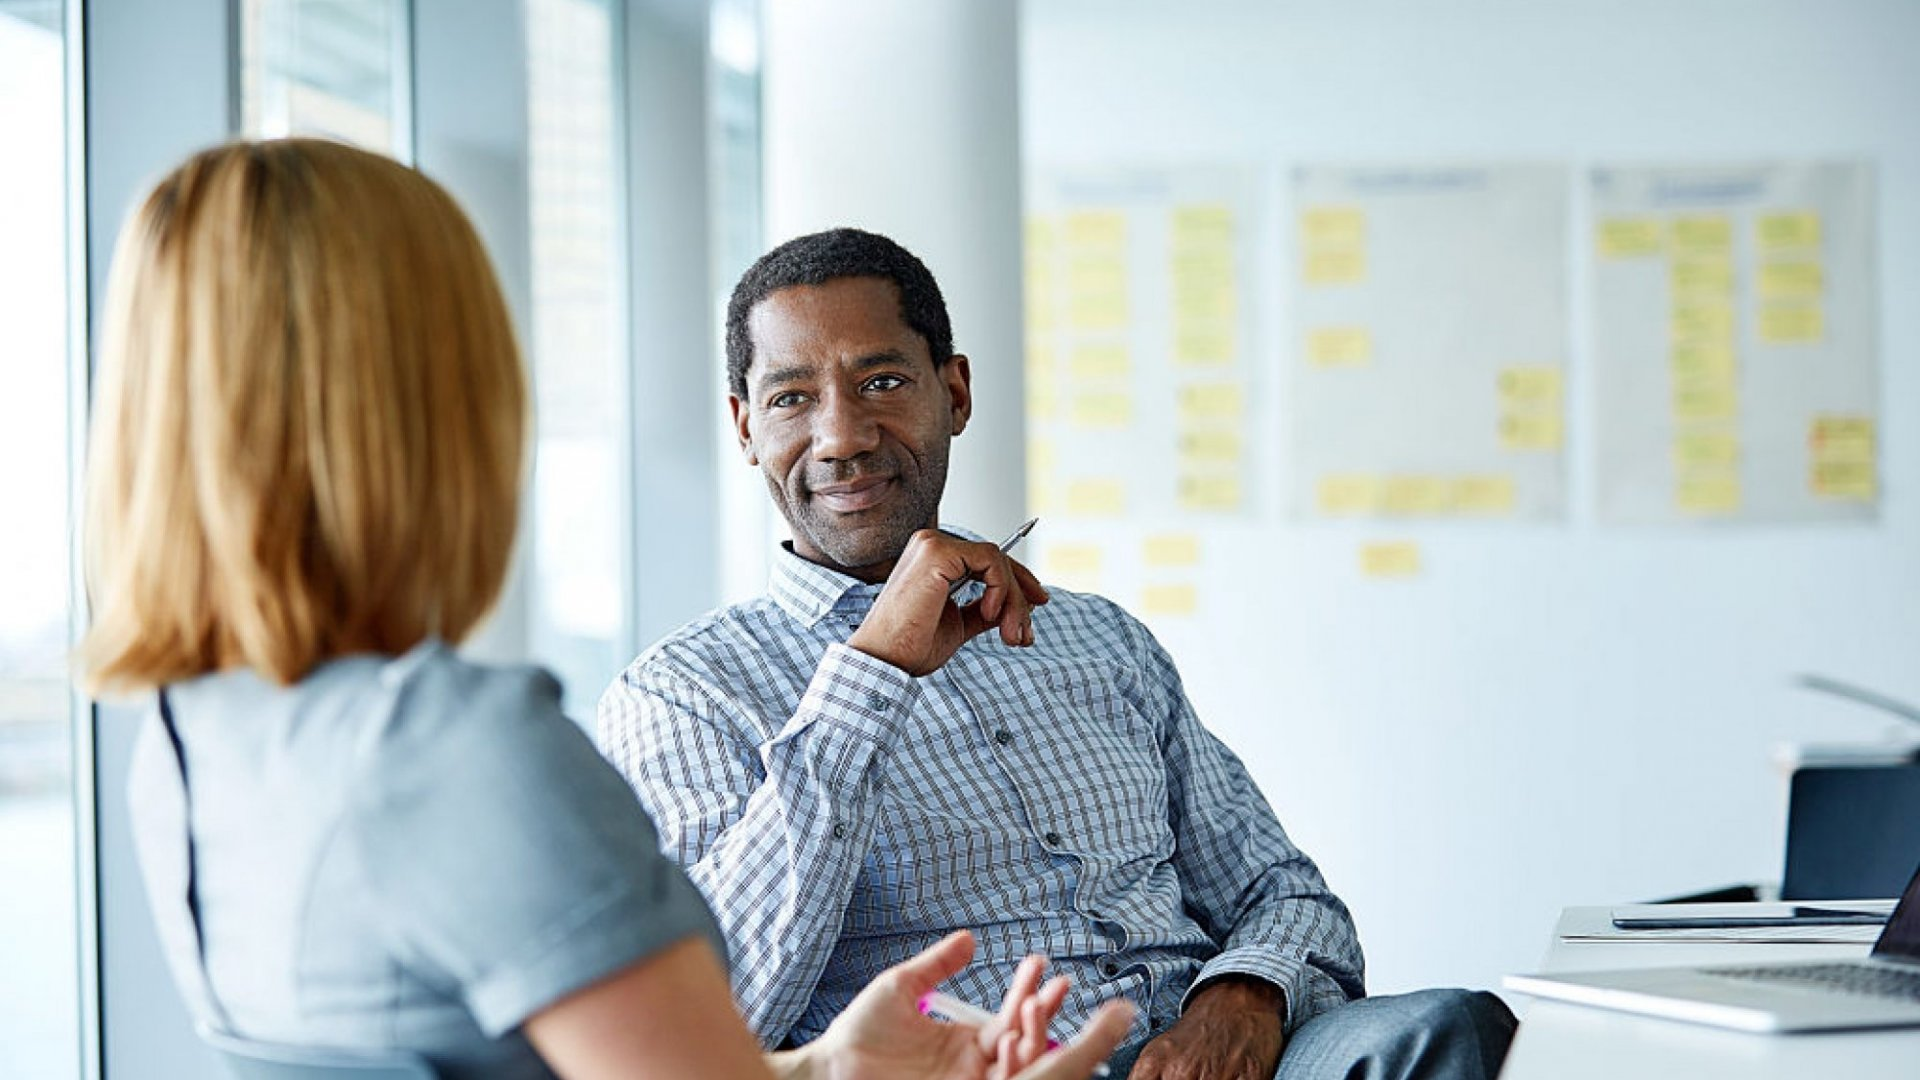 4 Simple Ways to Improve Communication in the Workplace